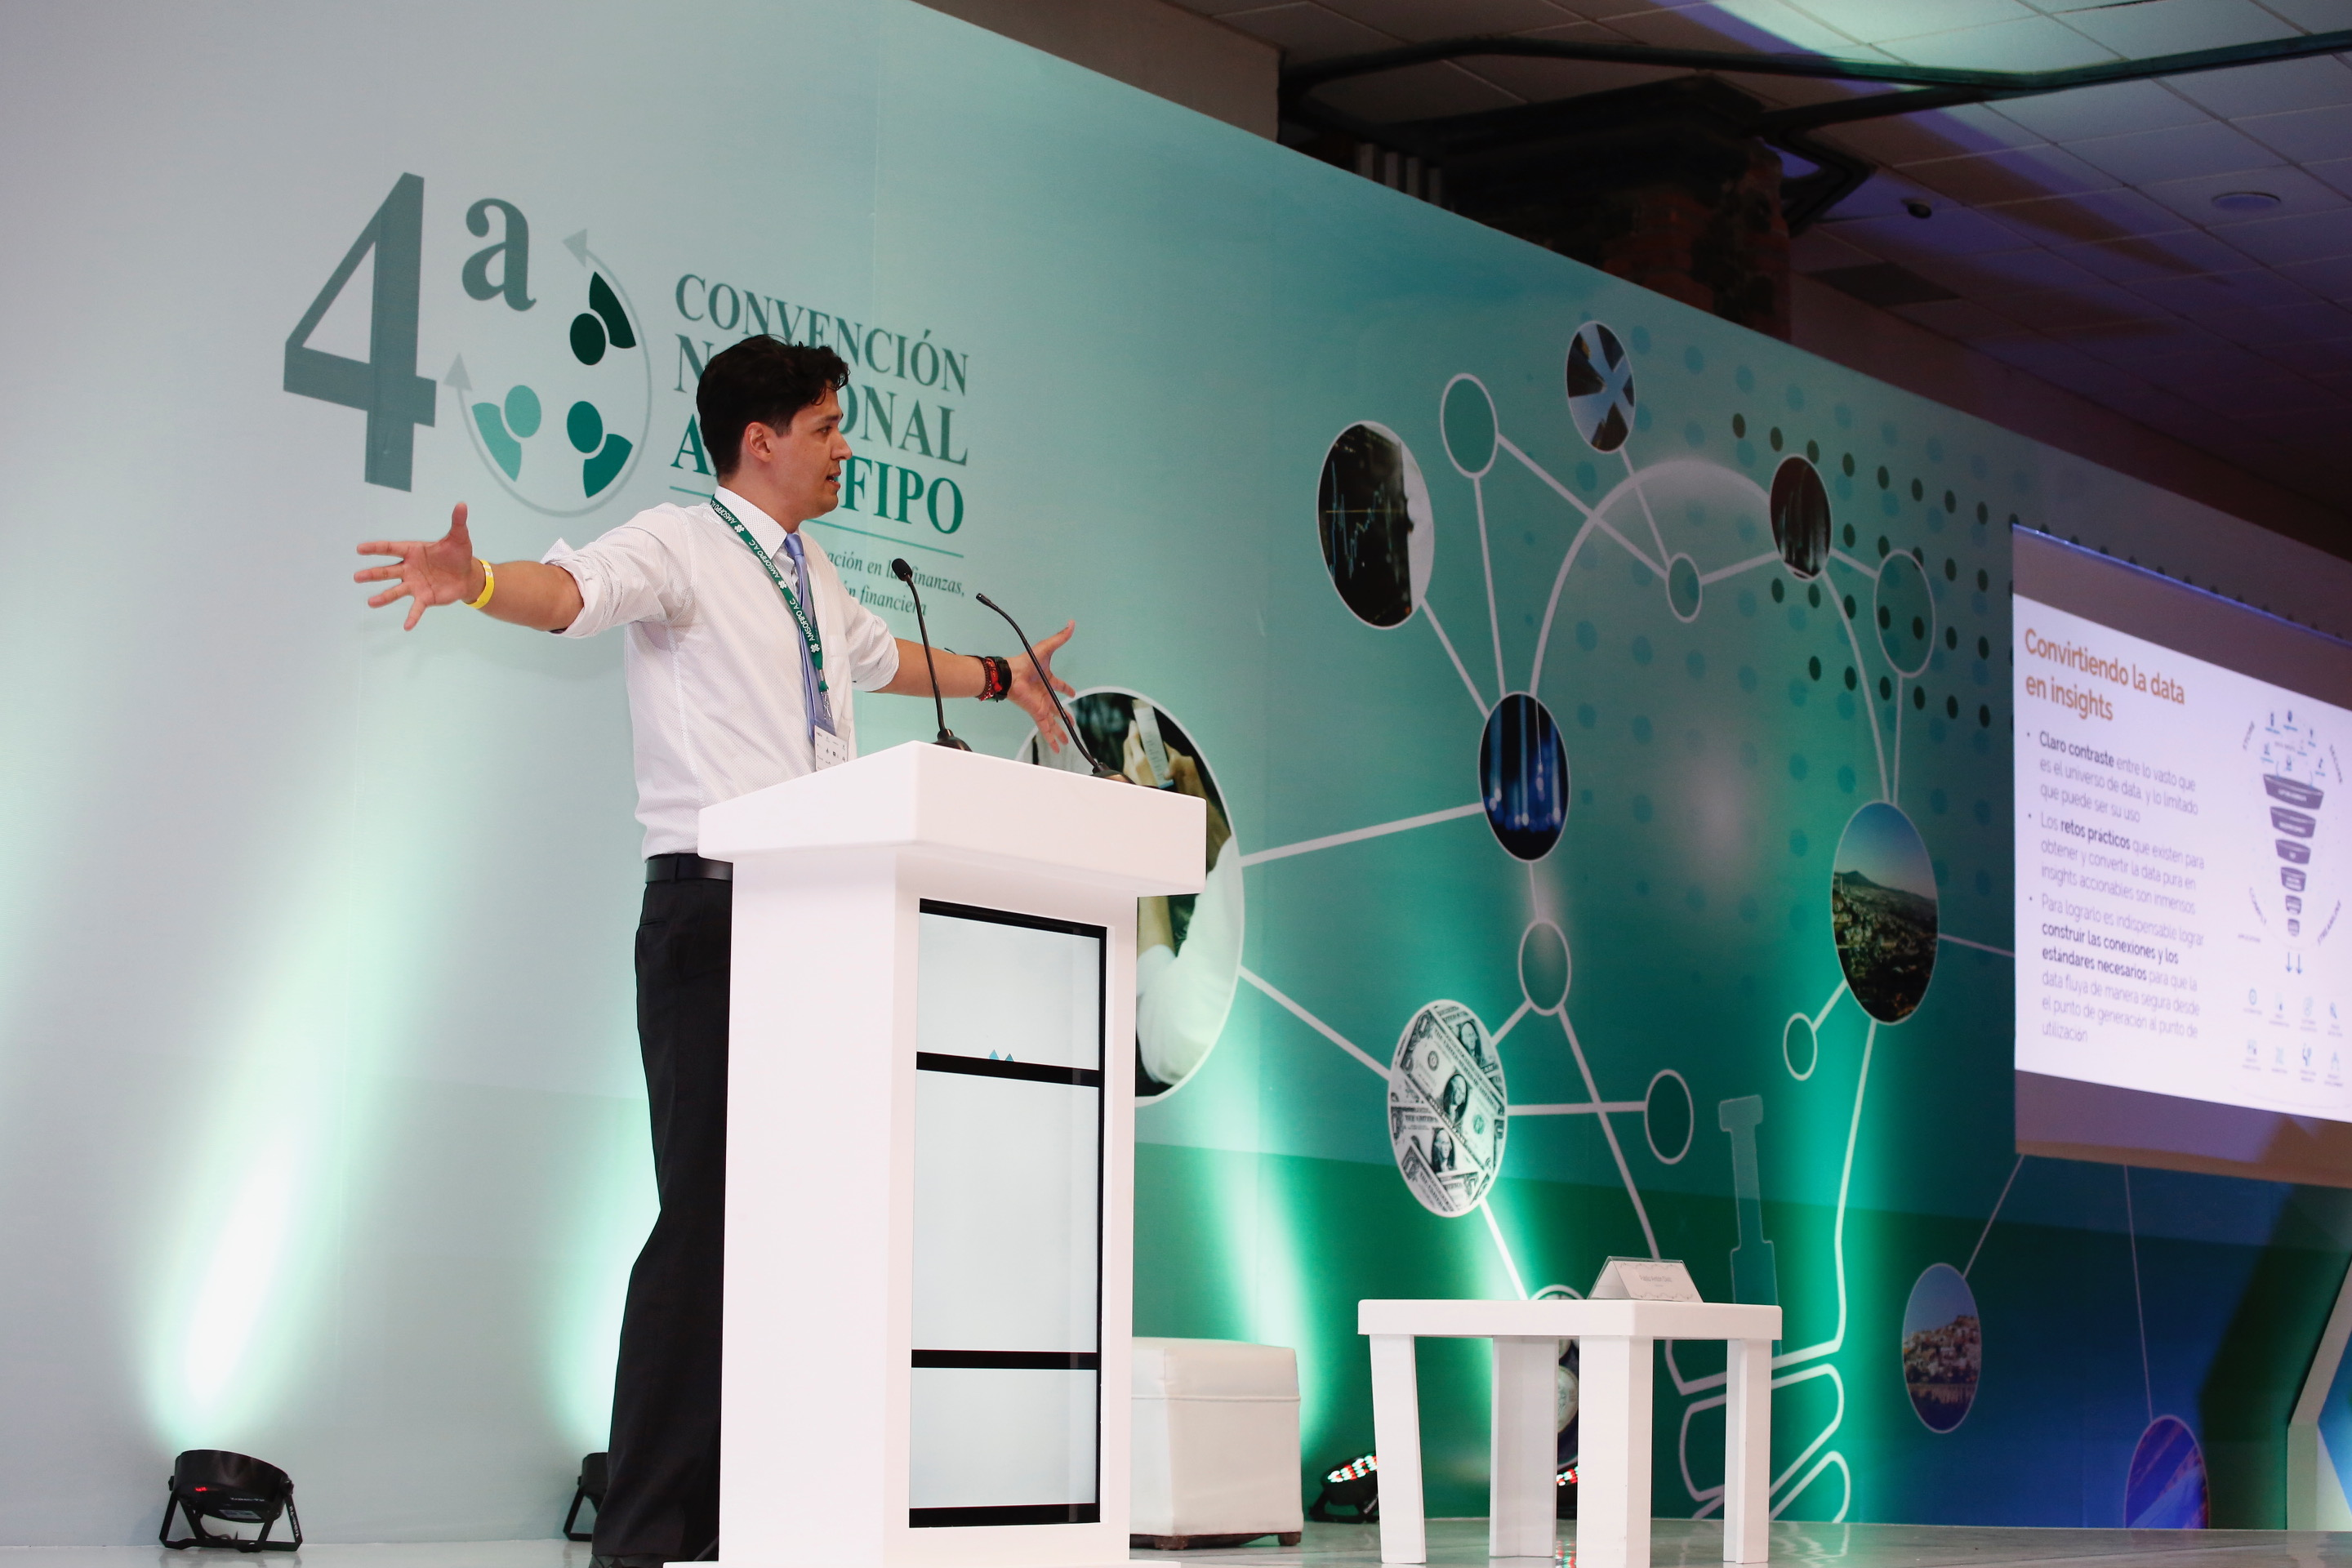 Pablo Anton-Diaz, research manager, CFI, engages financial service providers at teh AMSFIPO conference in Mexico, July 2018.